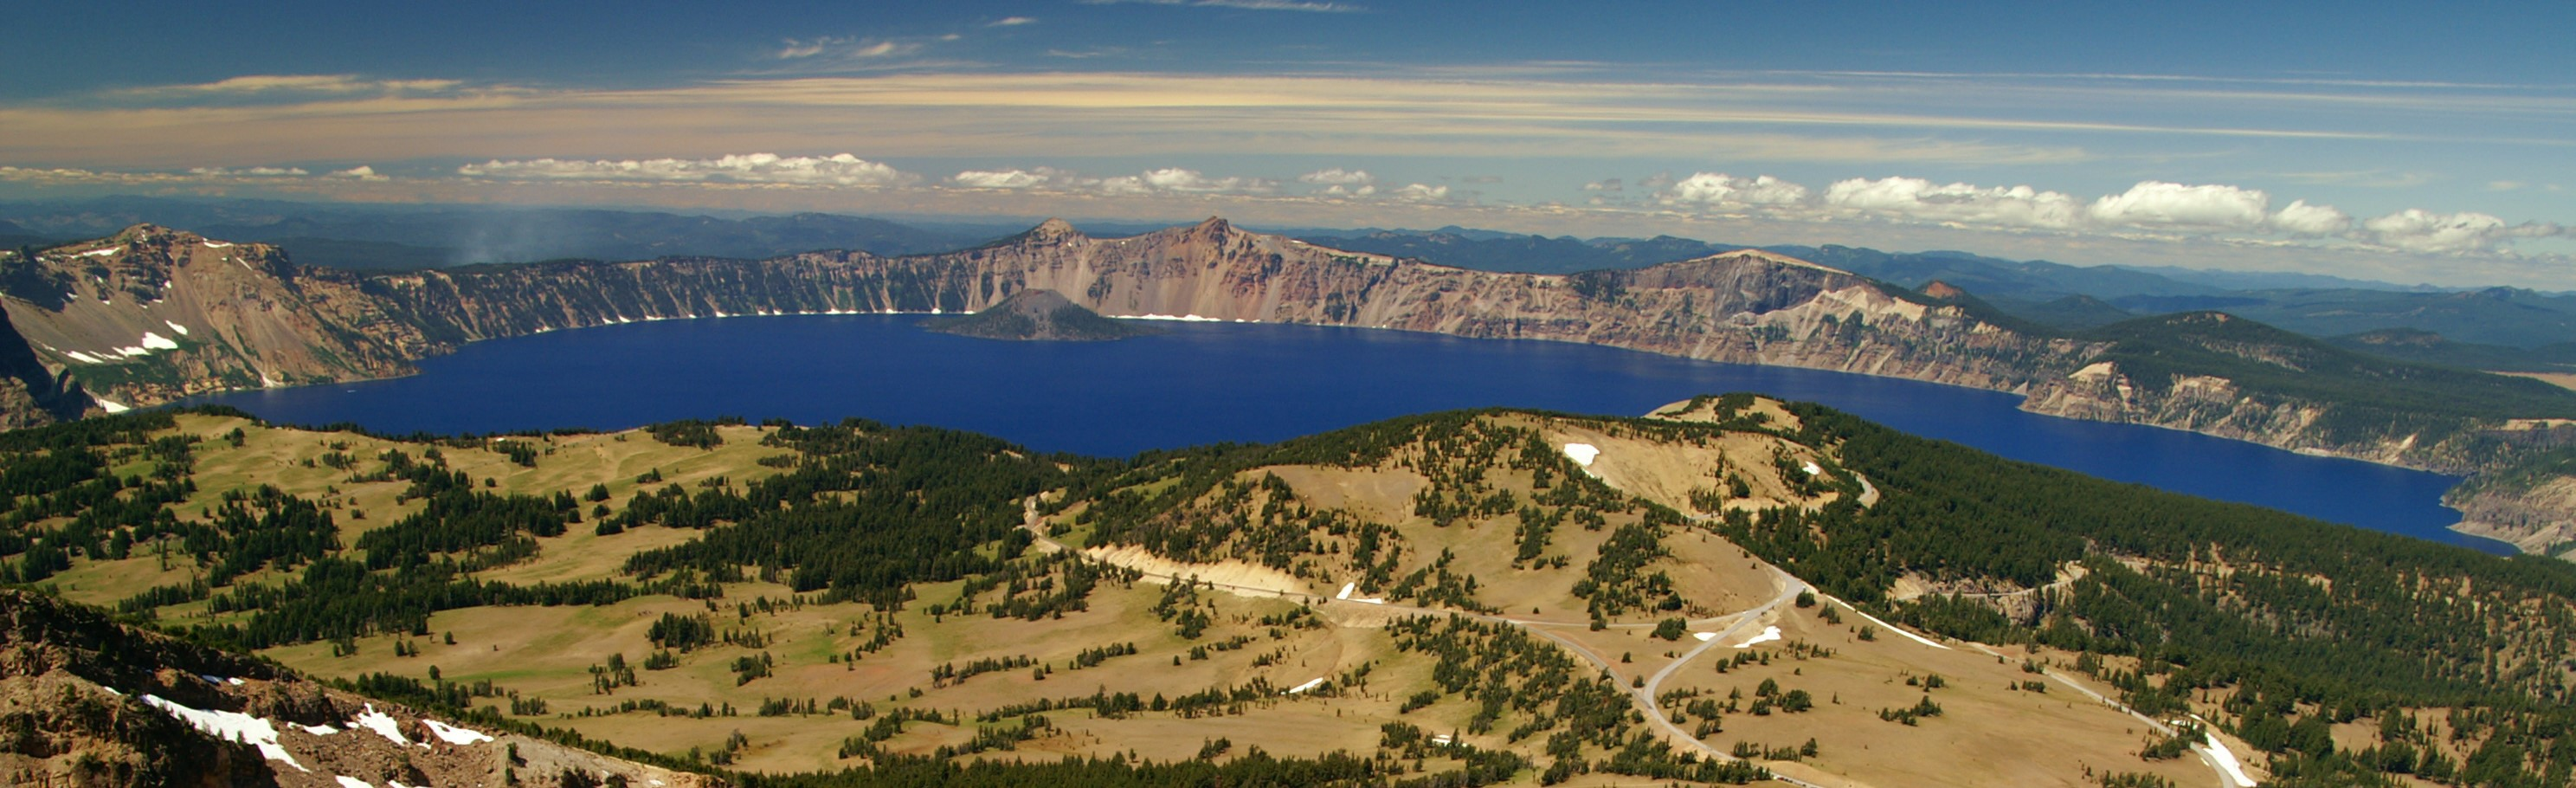 A view of Crater Lake National Park from Mt. Scott. Photo by Crater Lake National Park.